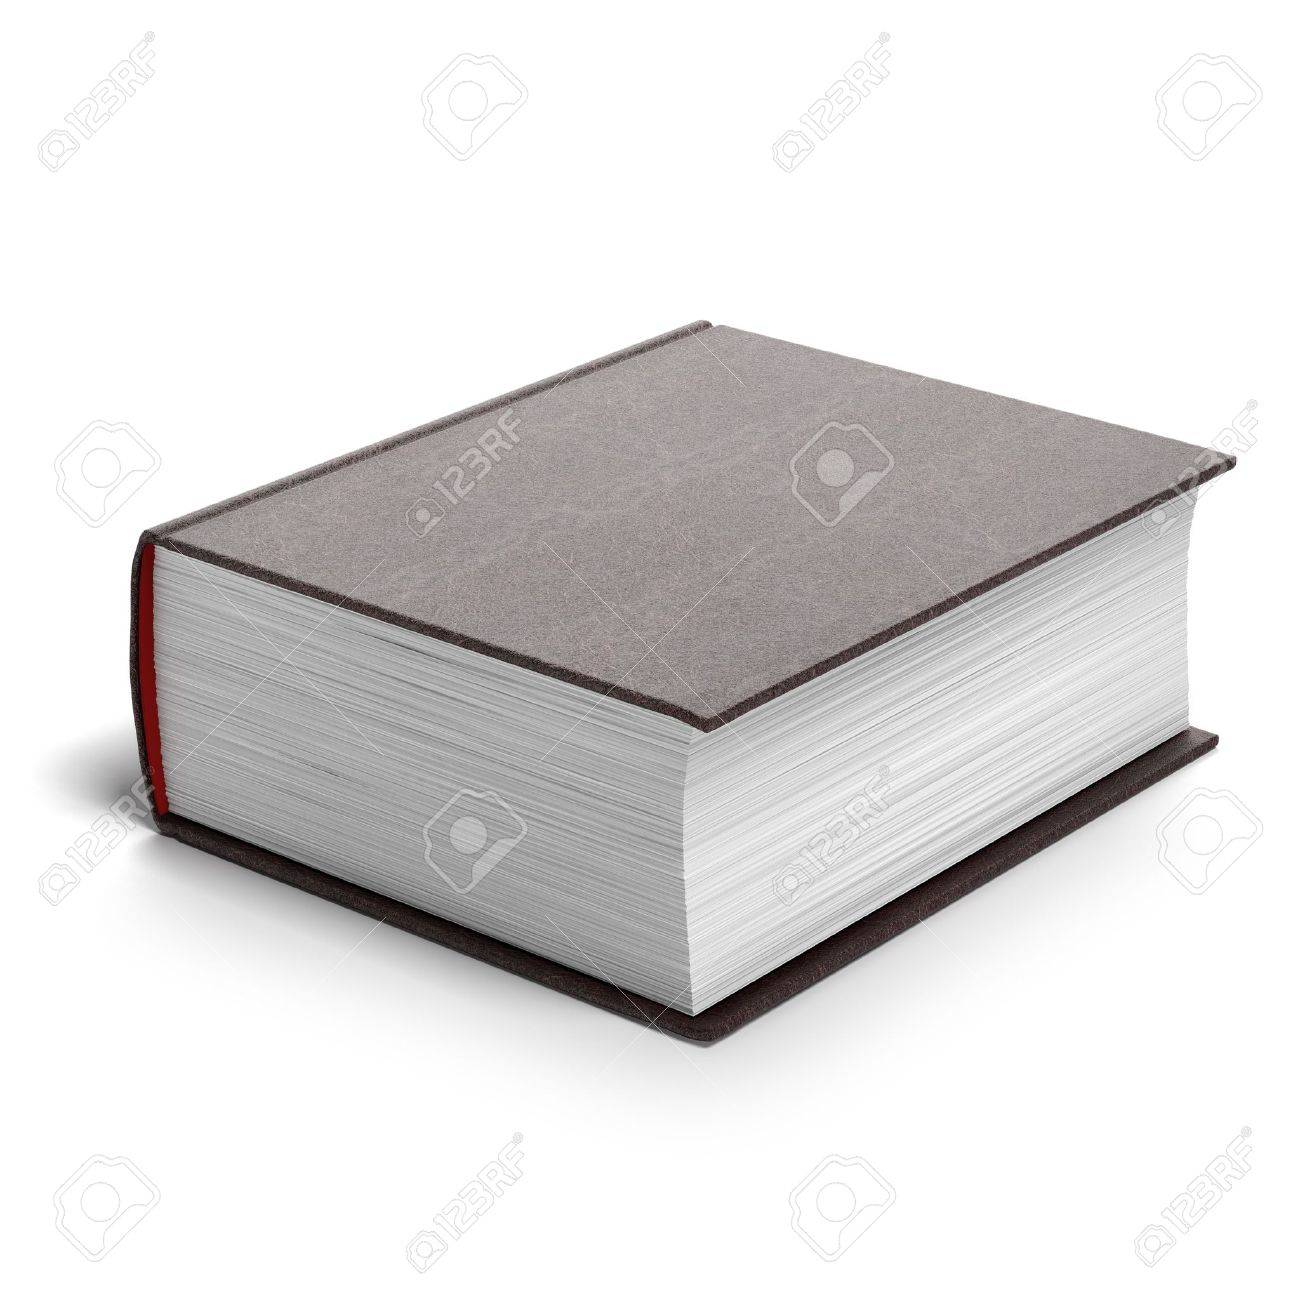 Thick red book isolated on a white background - 17125696